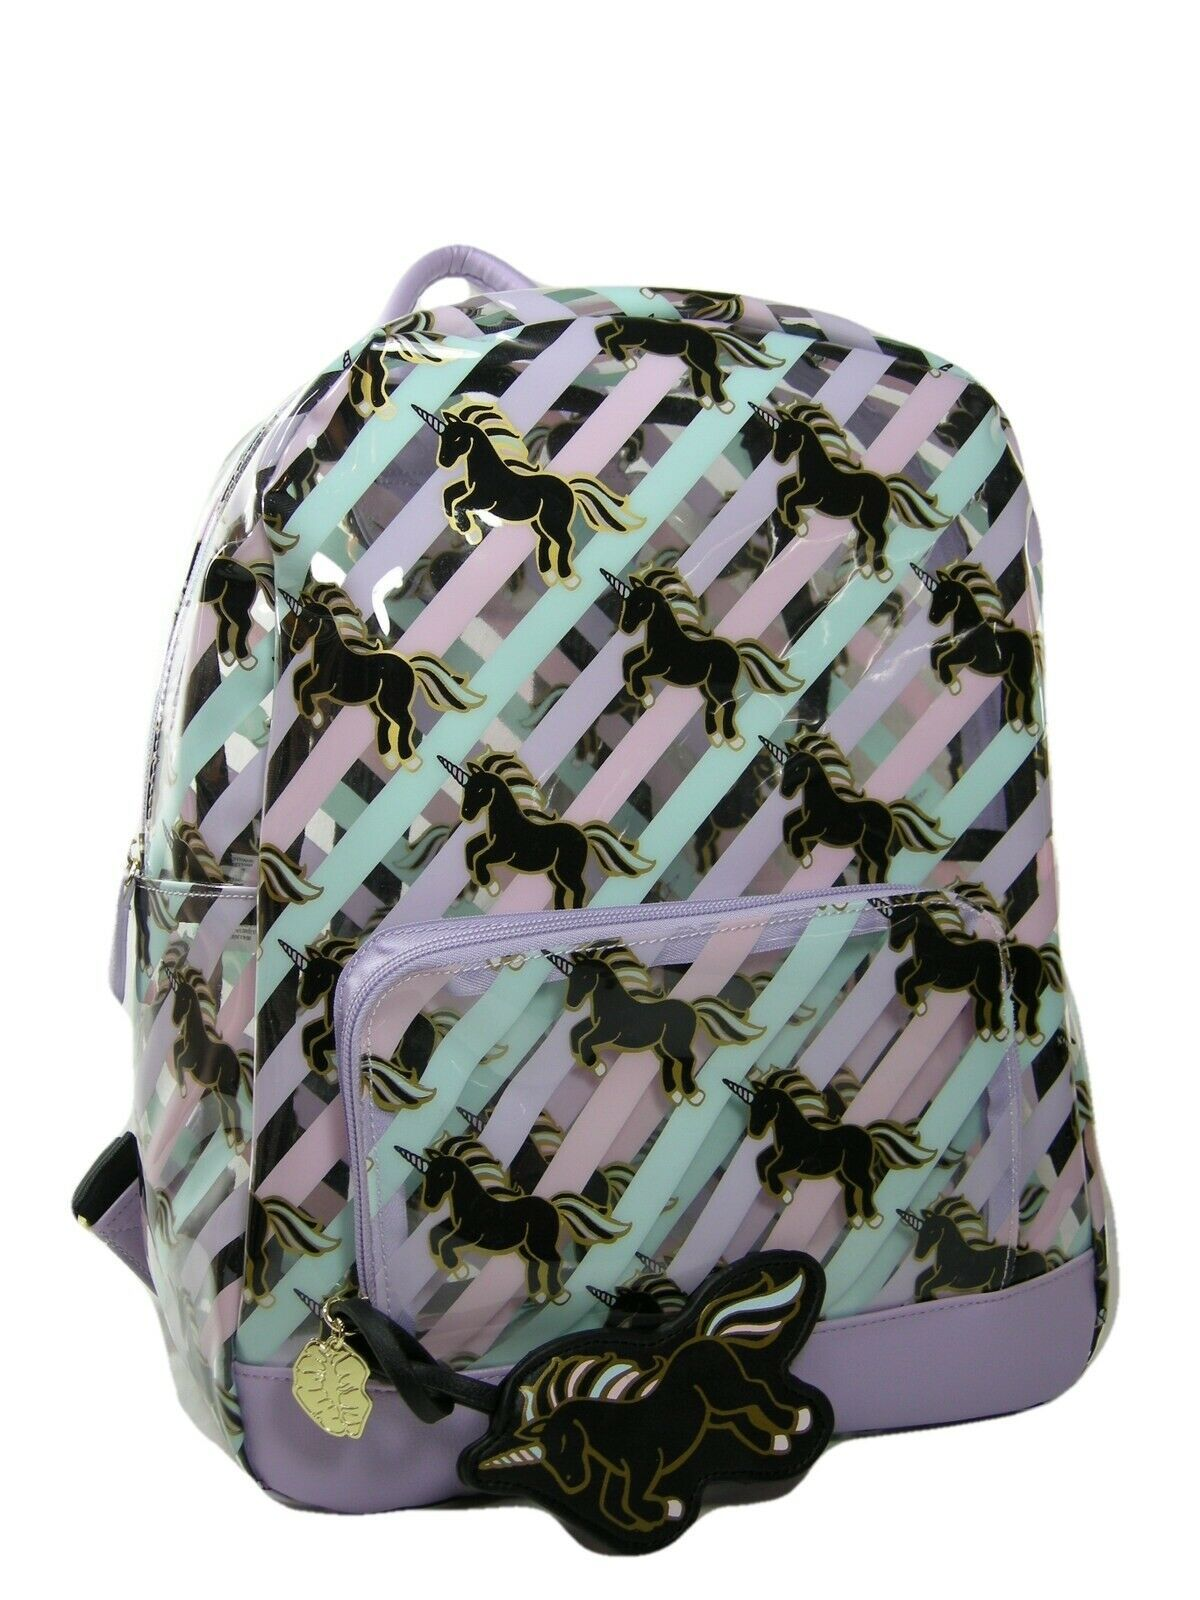 4007e61a956 Betsey Johnson Backpack: 1 customer review and 51 listings